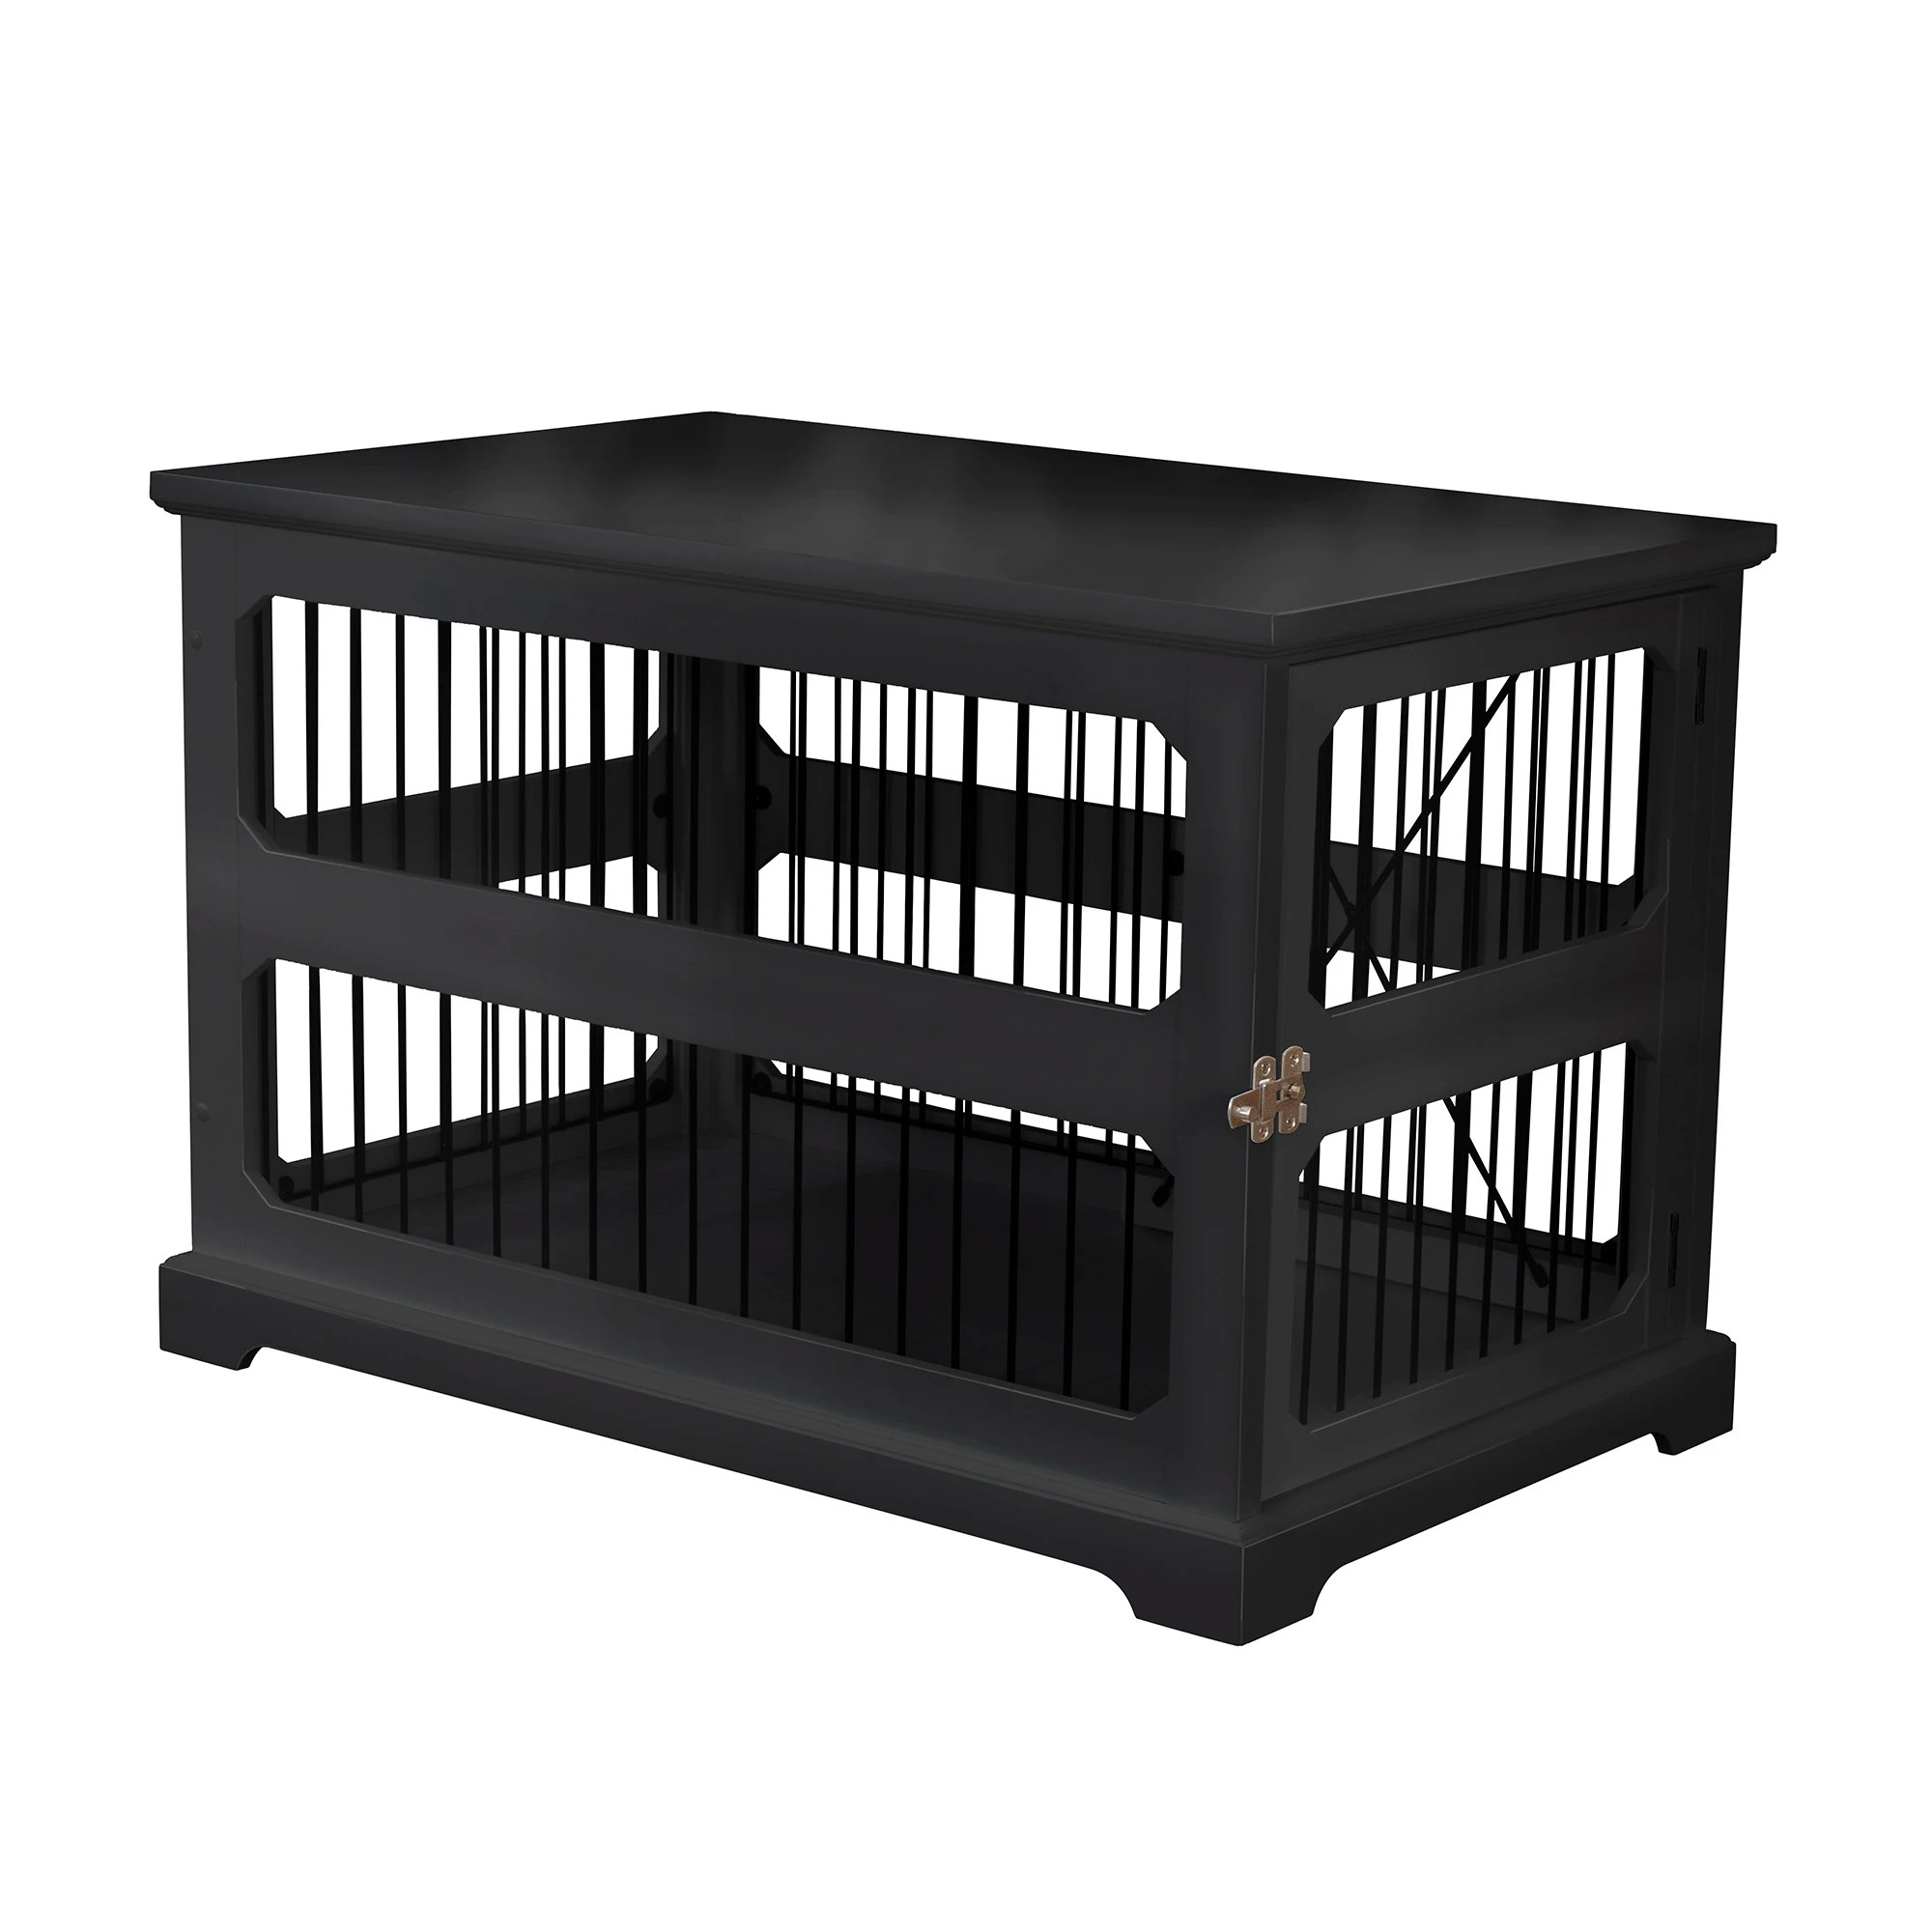 zoovilla slide aside crate and end table in black 35 43 l x 21 65 w x 23 5 h